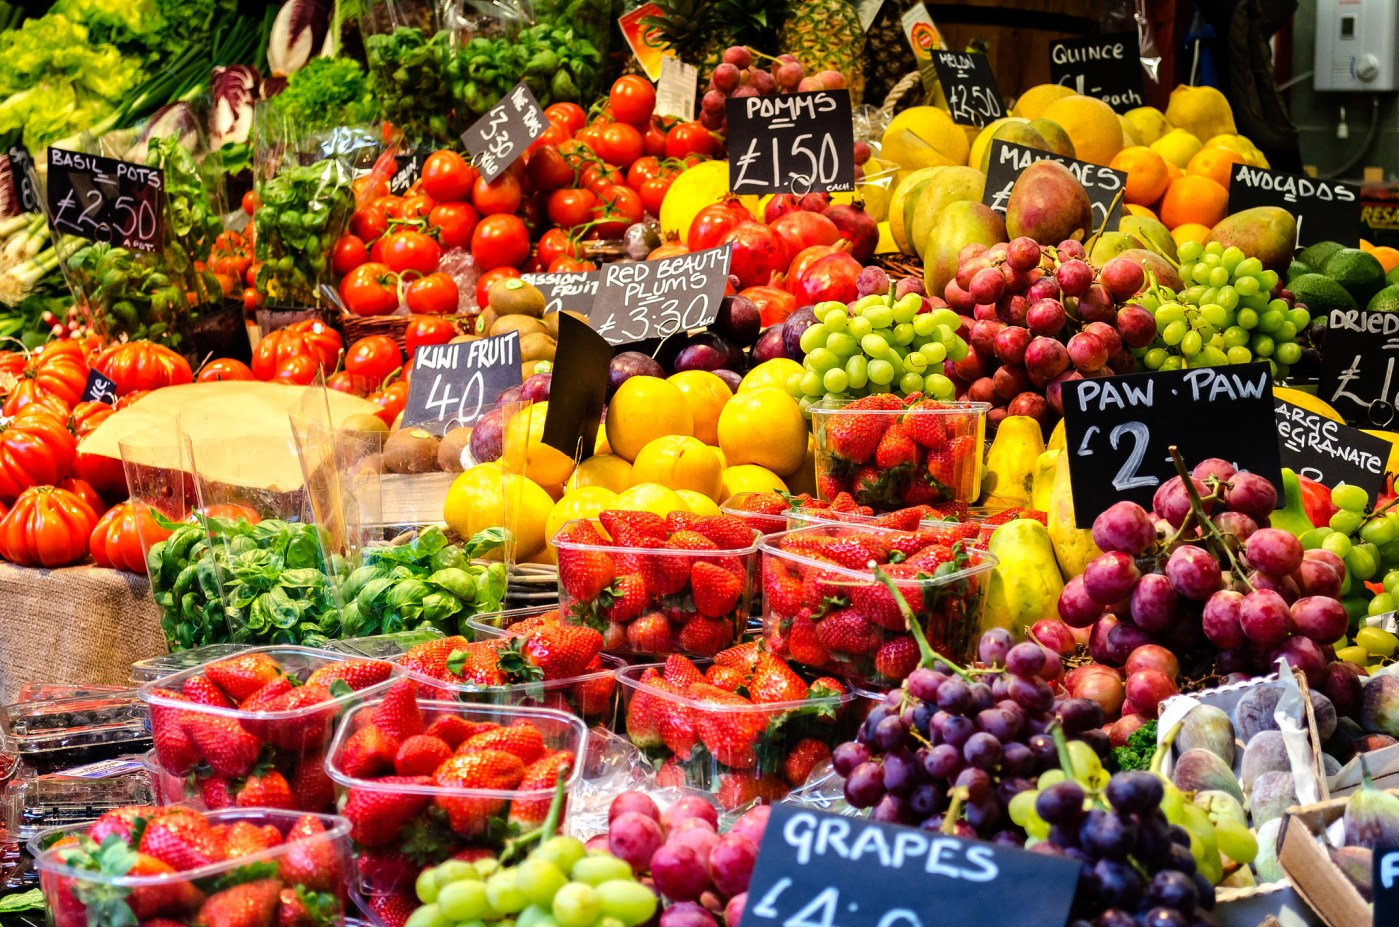 Air pollution – can changing your diet help?